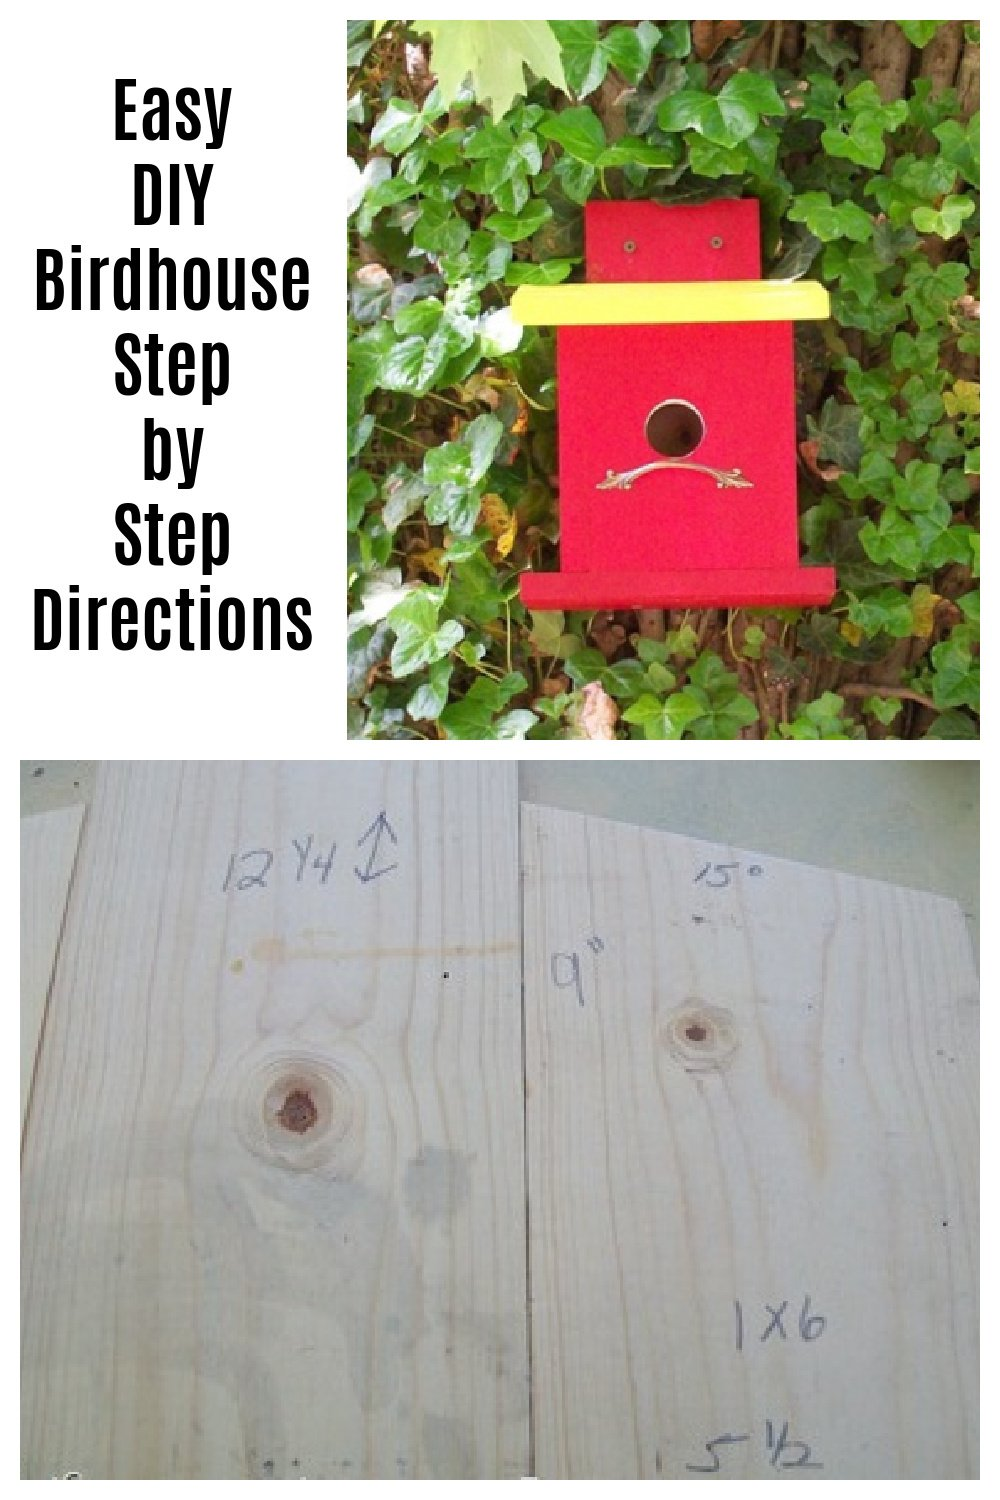 This easy DIY birdhouse is quick and fun to make with these step by step directions with all the information you need, including measurements. #MyRepurposedLife #easy #diy #birdhouse #scrapwood via @repurposedlife